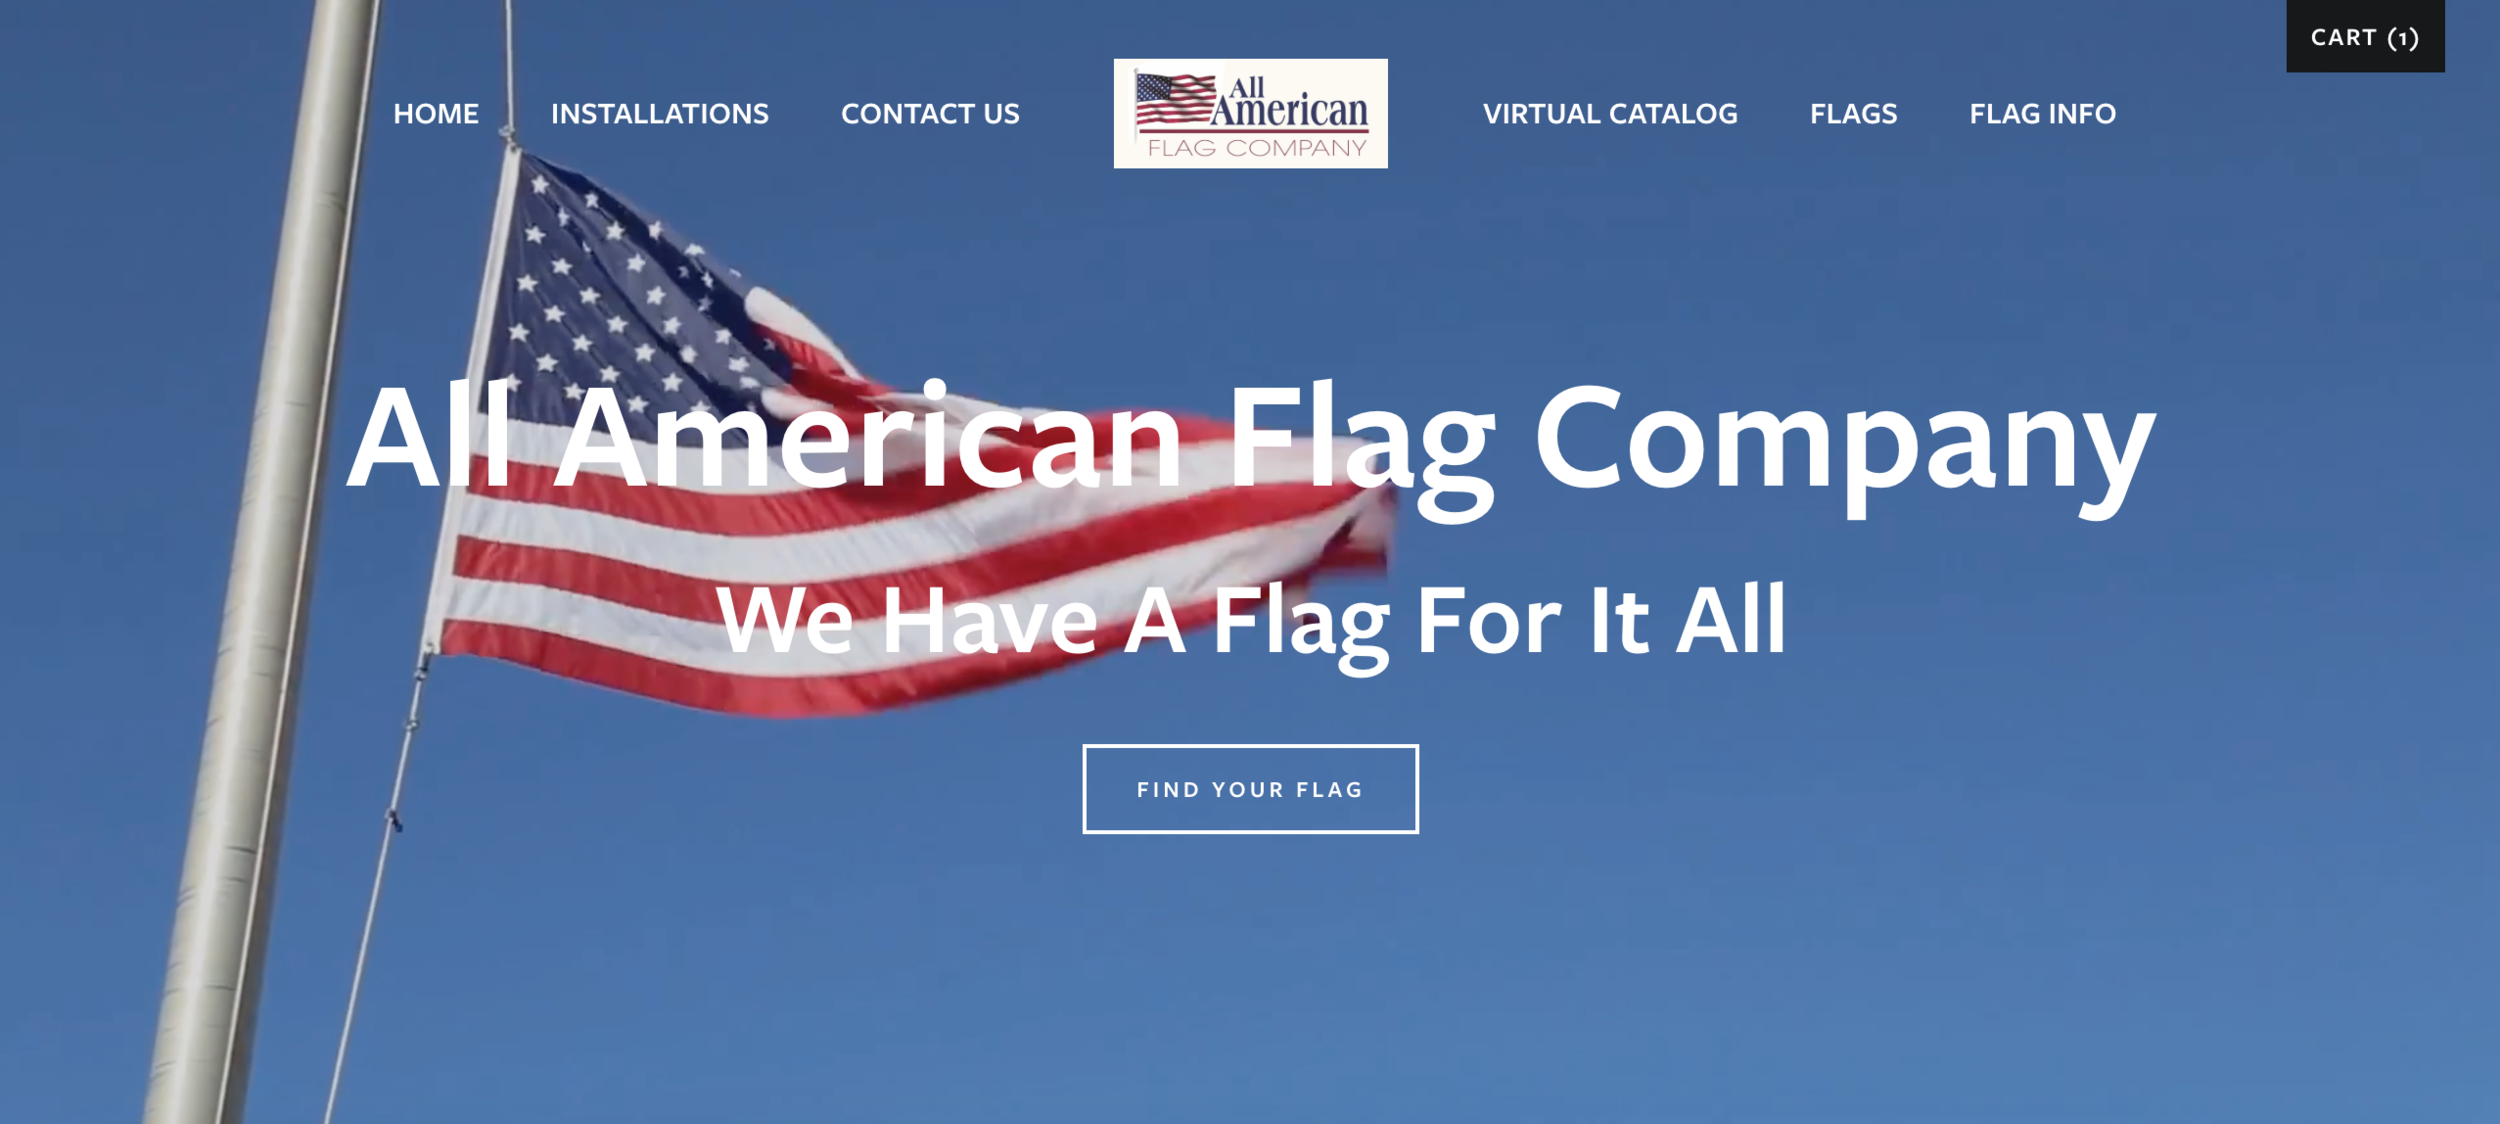 All_American_Flag_Co_South_Elgin_IL